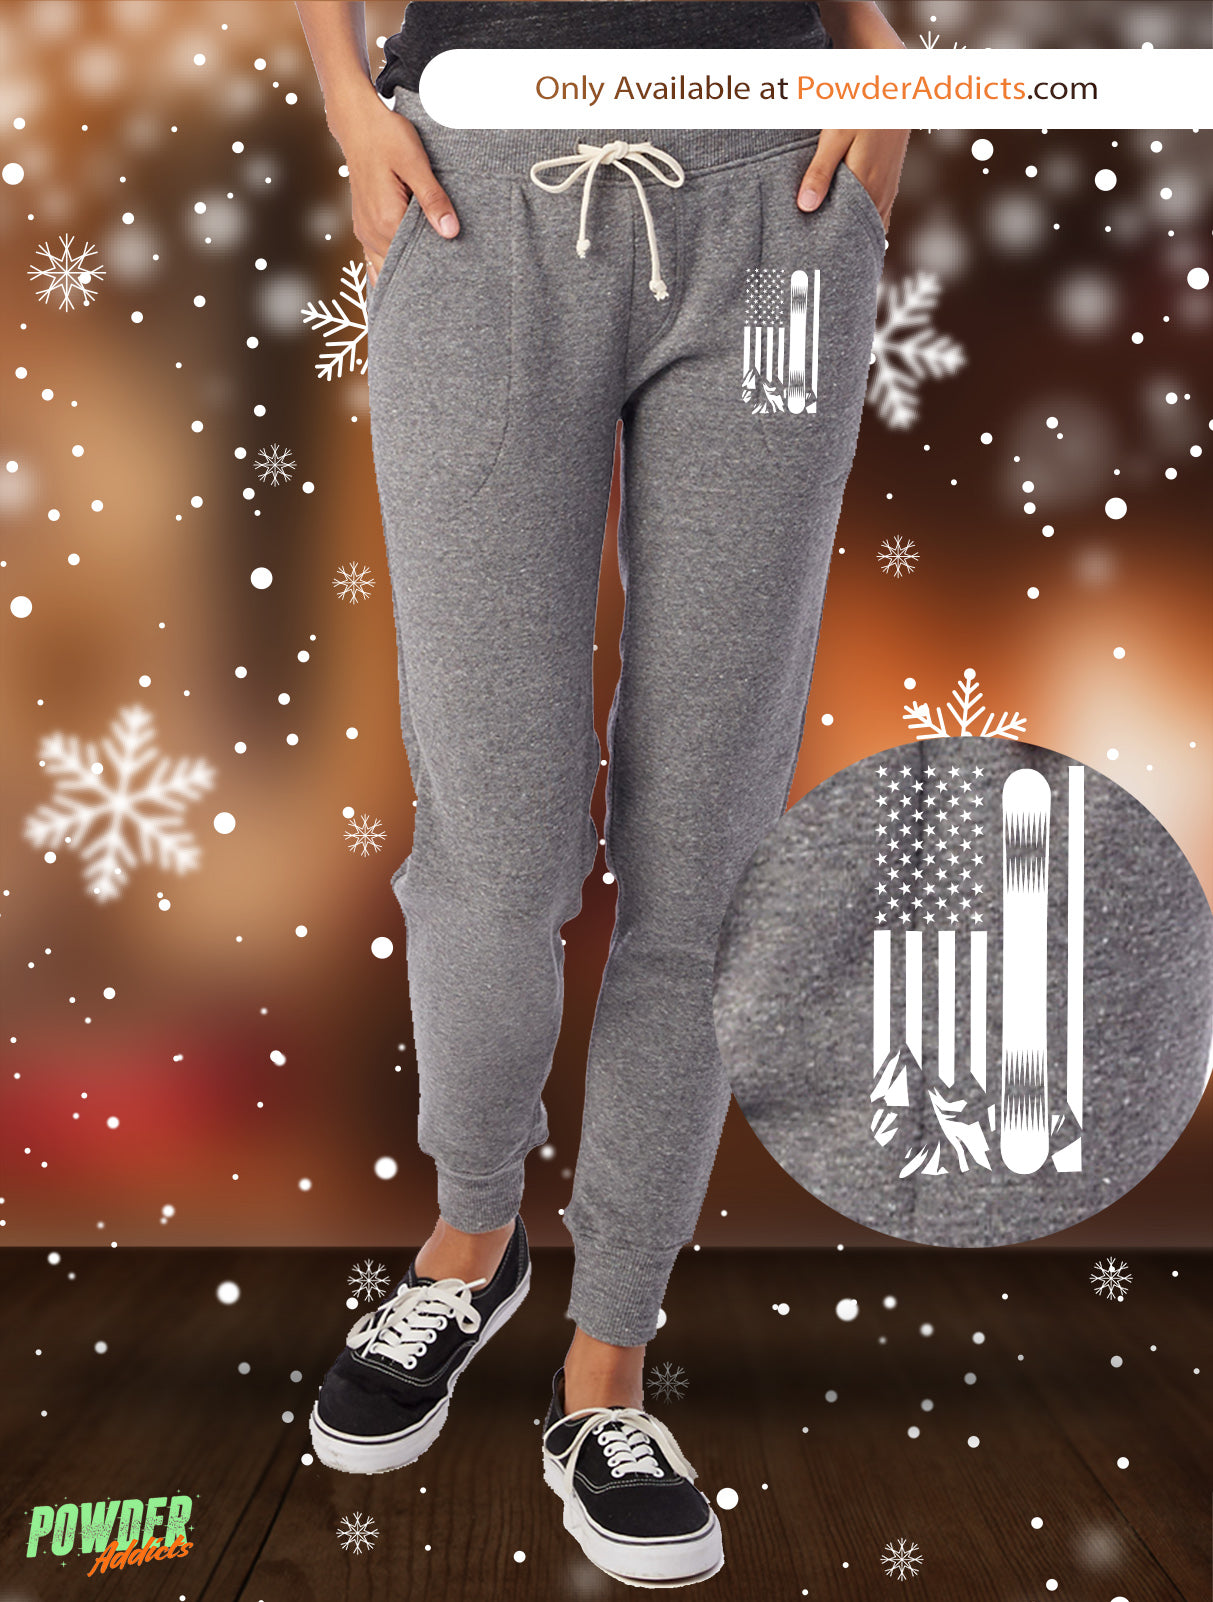 USA Snowboard Flag All White Women's Adult Fleece Jogger - Powderaddicts